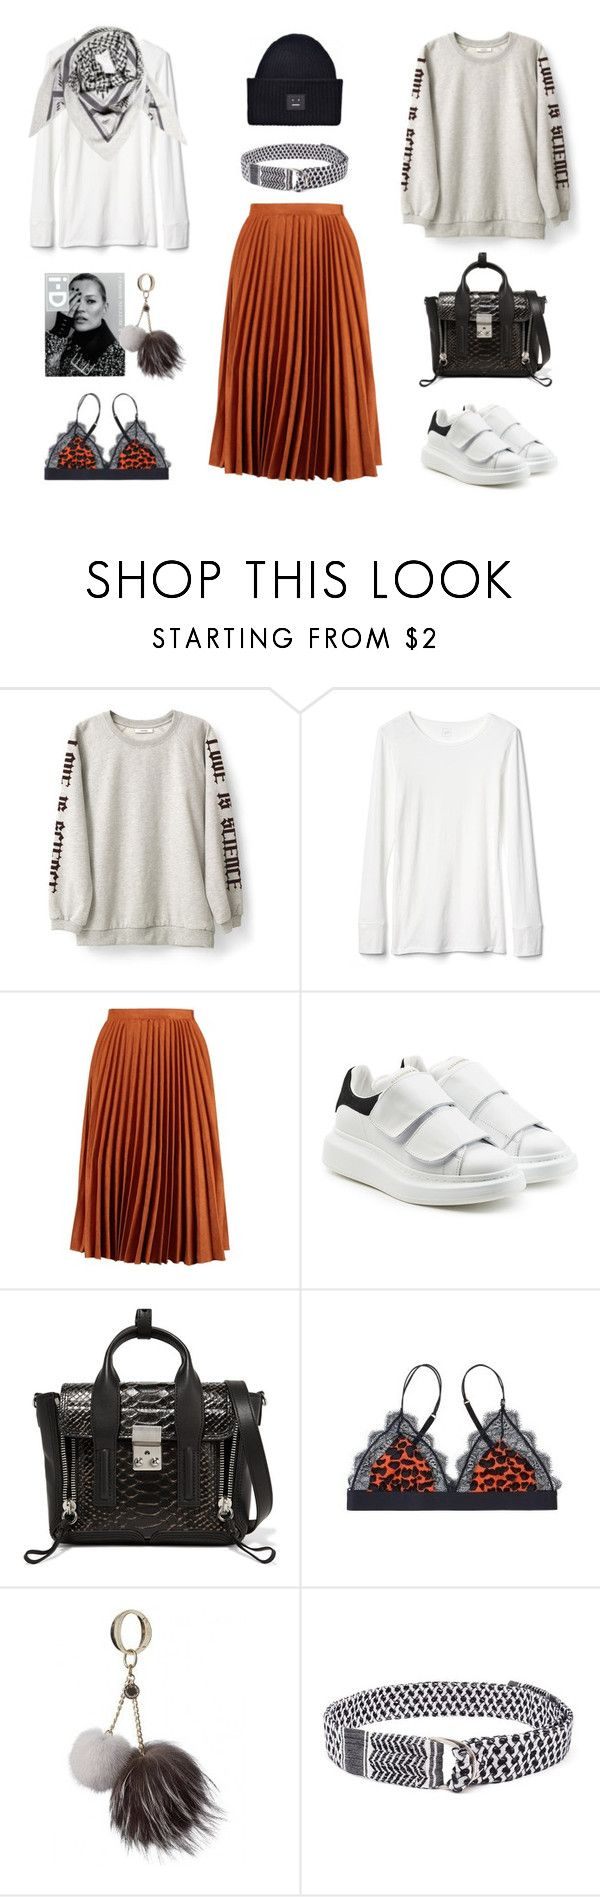 462 wednesday by caroline mathilde liked on polyvore featuring gap